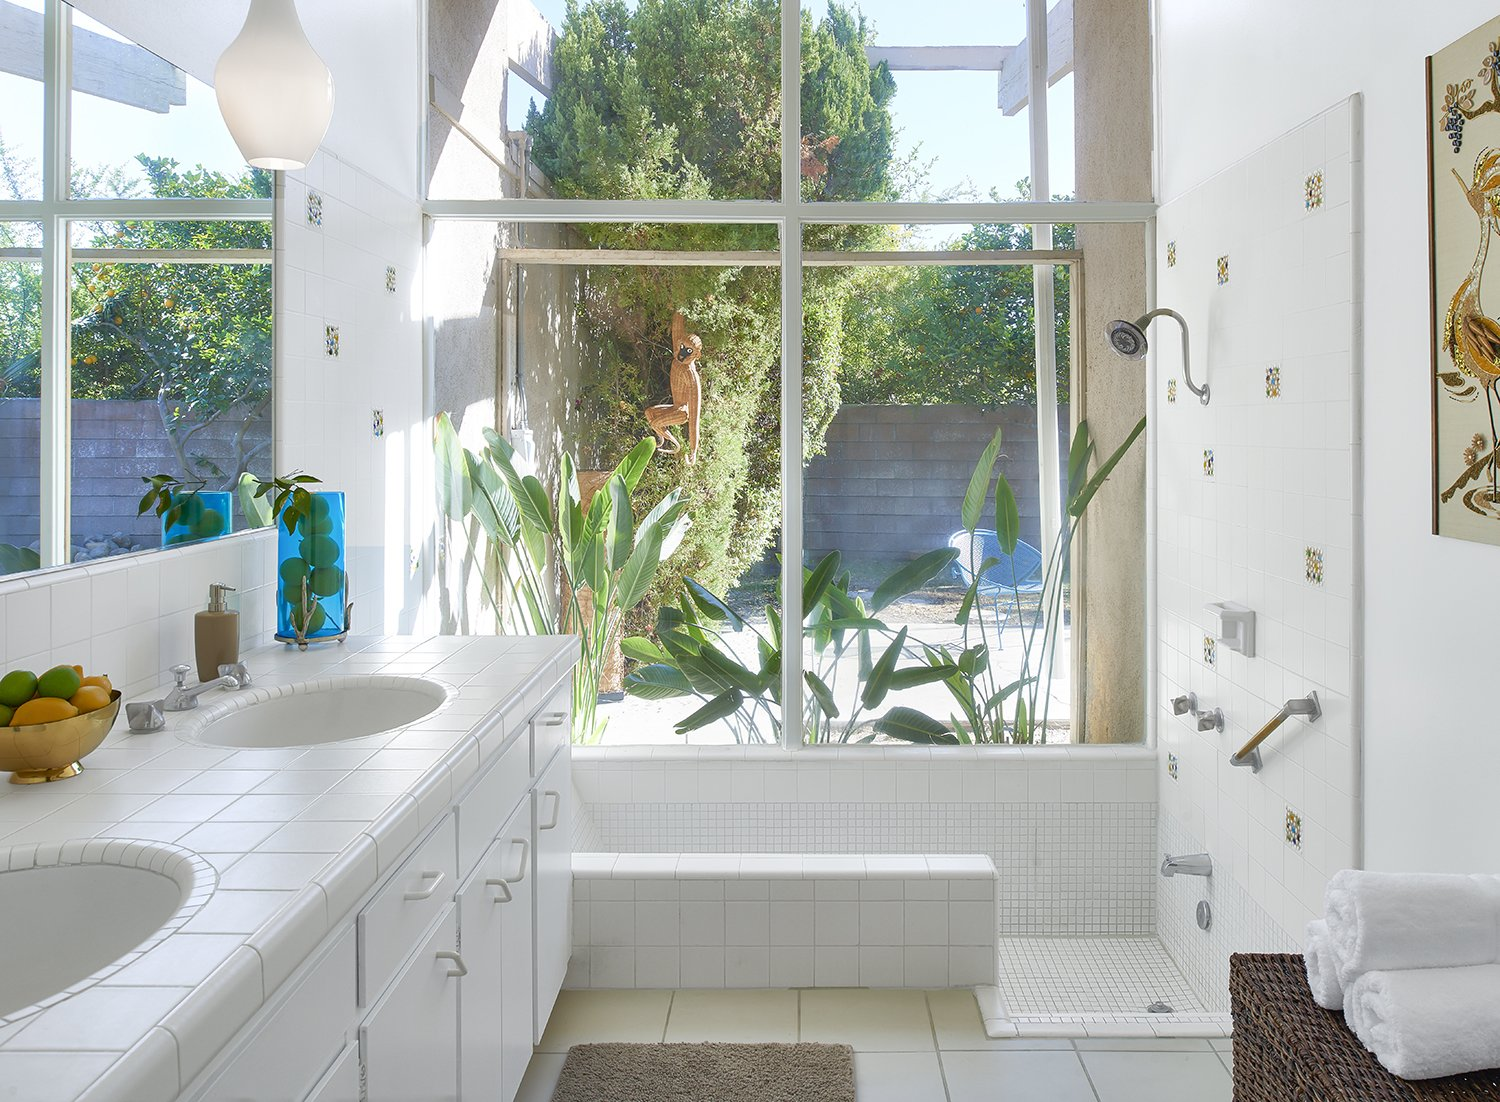 """The Jungle bathroom at the Monkey Tree hotel in Palm Springs. Accessories and art like the roadrunner needlepoint wall hanging were largely """"made by regular people and found in vintage stores,"""" Kathy says."""